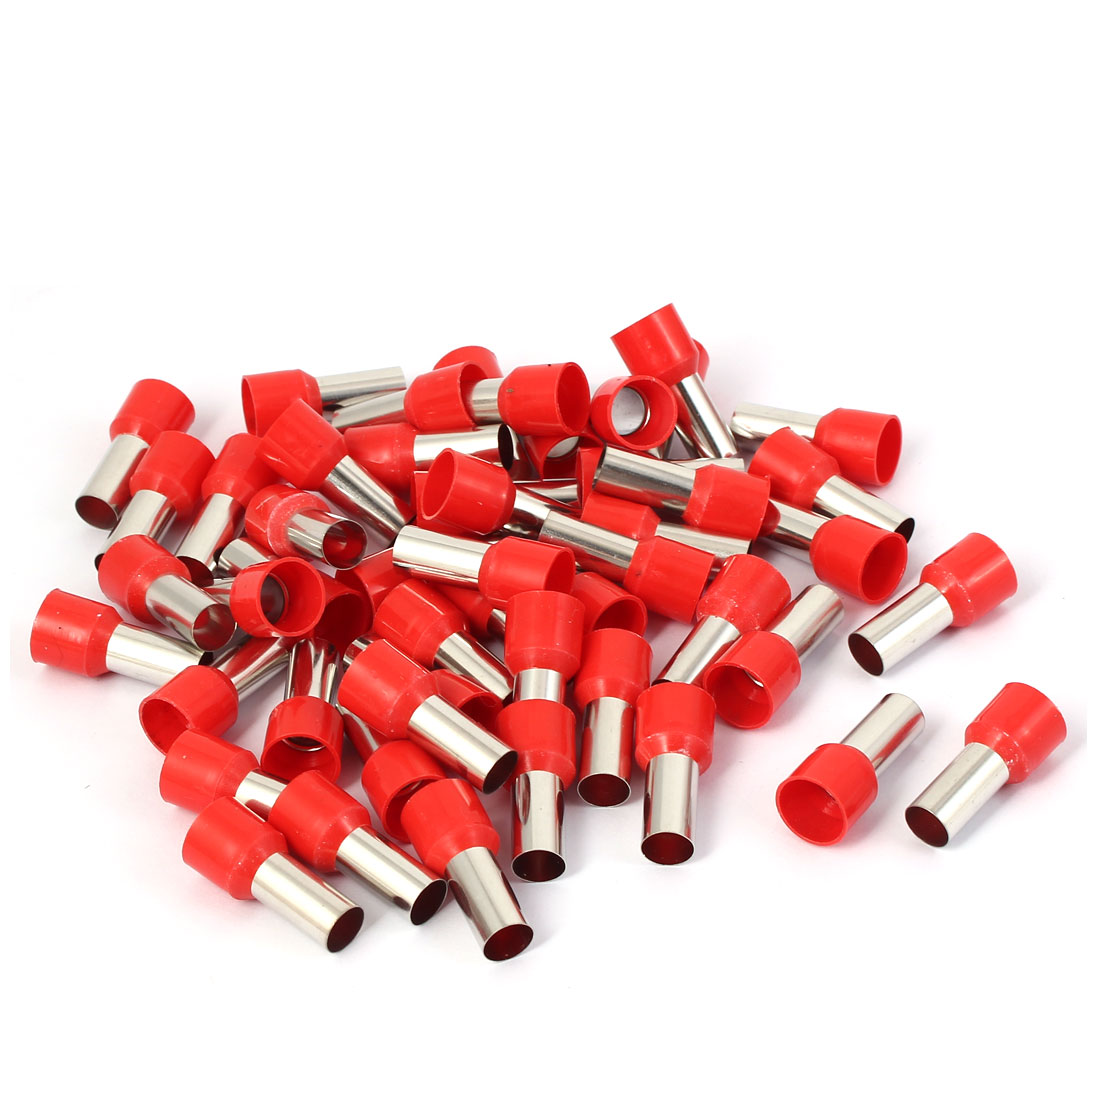 E25-16 Tube Style Electric Cable Wire Tips Crimp Insulated Terminal 50pcs